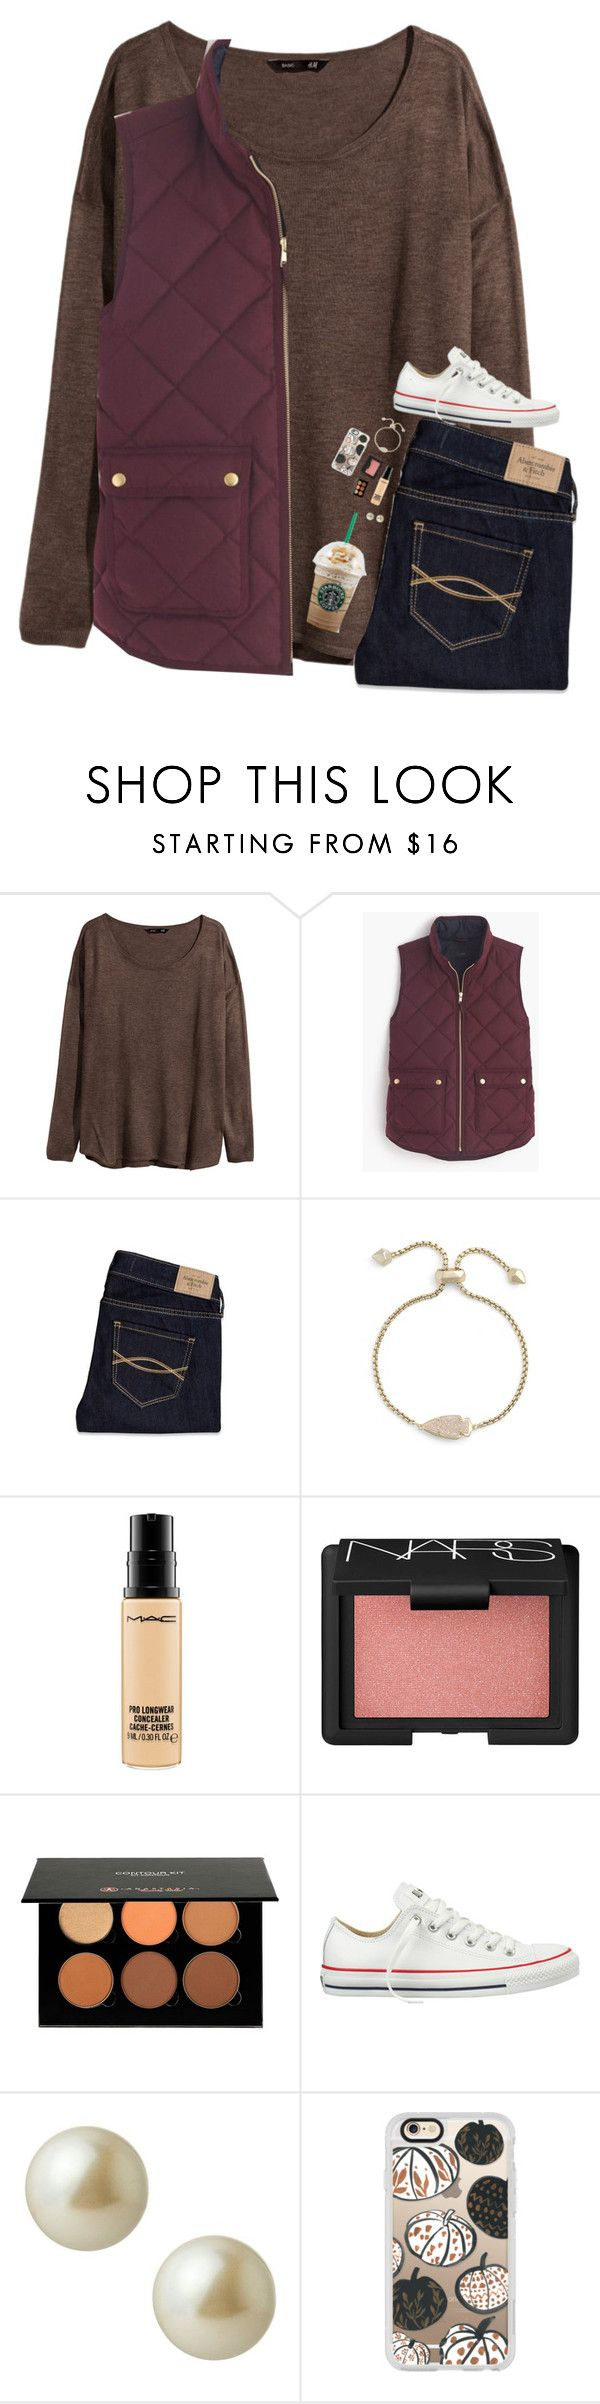 """Day 1- School Festival"" by beautygirl480 ❤ liked on Polyvore featuring H&M, J.Crew, Abercrombie & Fitch, Kendra Scott, MAC Cosmetics, NARS Cosmetics, Anastasia, Converse, Carolee and Casetify"